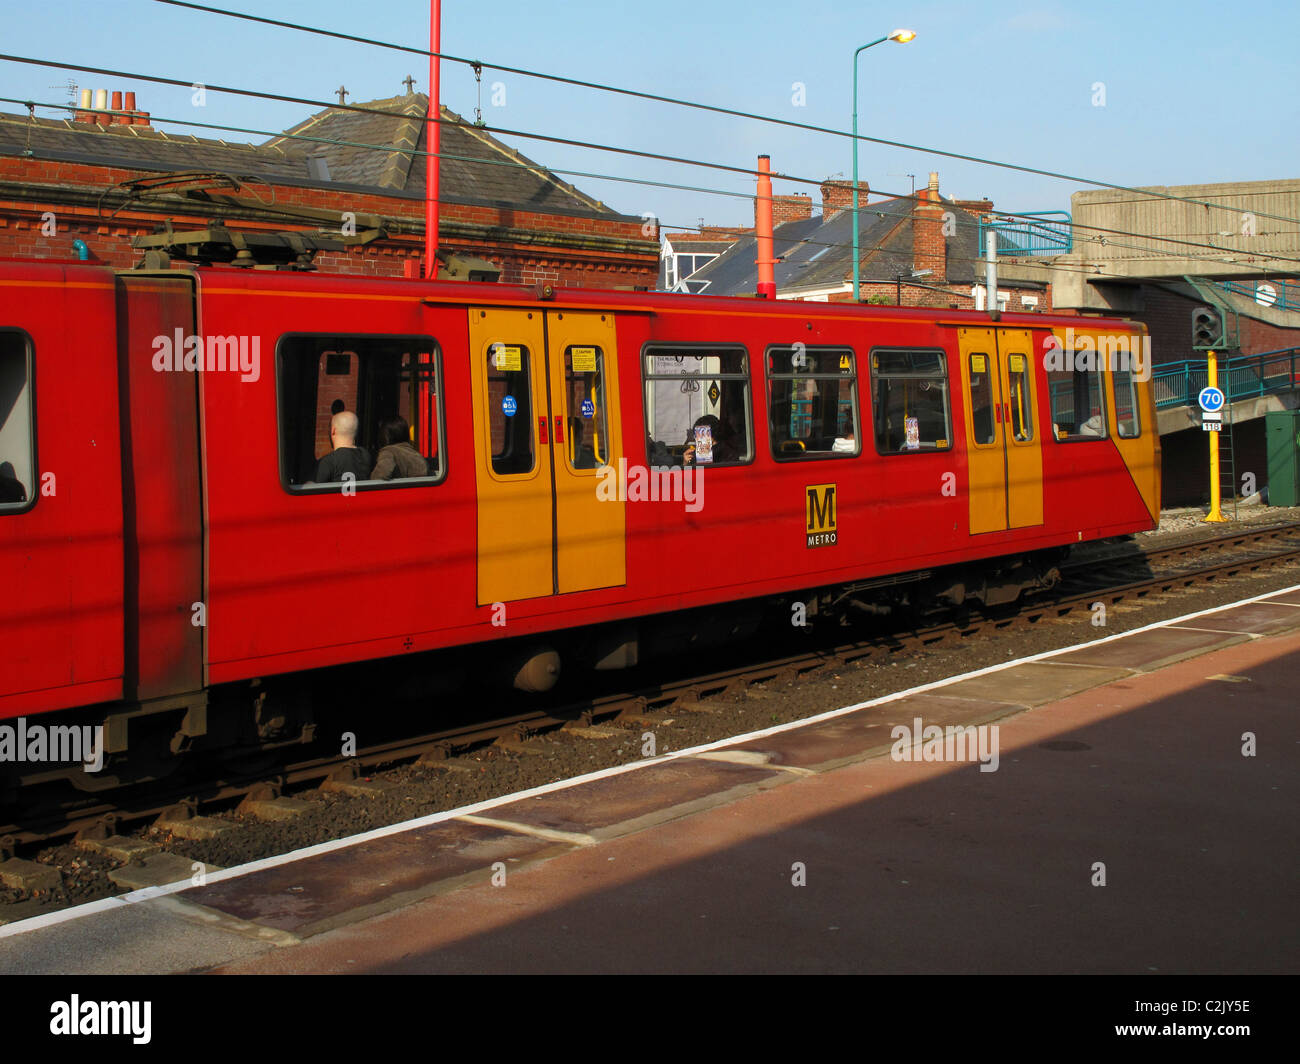 Tyne and Wear metro at West Jesmond station, Newcastle, England - Stock Image